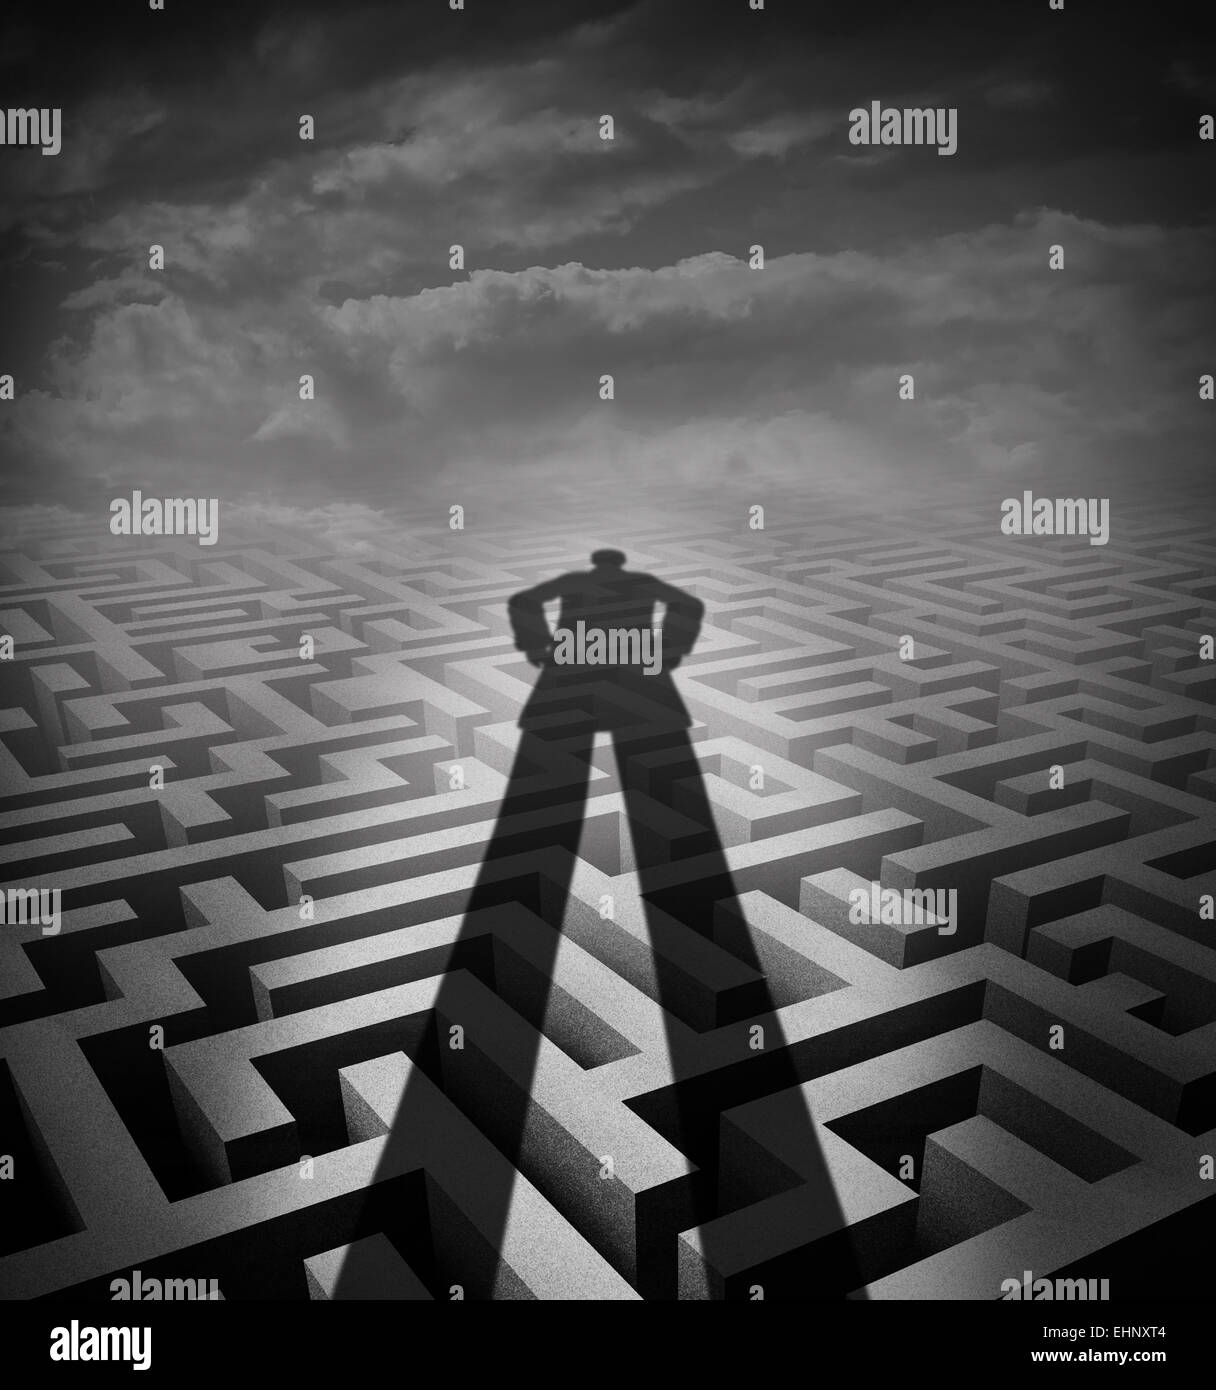 Management consulting and new consultant solution concept as a shadow of a person or advisor on a complicated maze - Stock Image